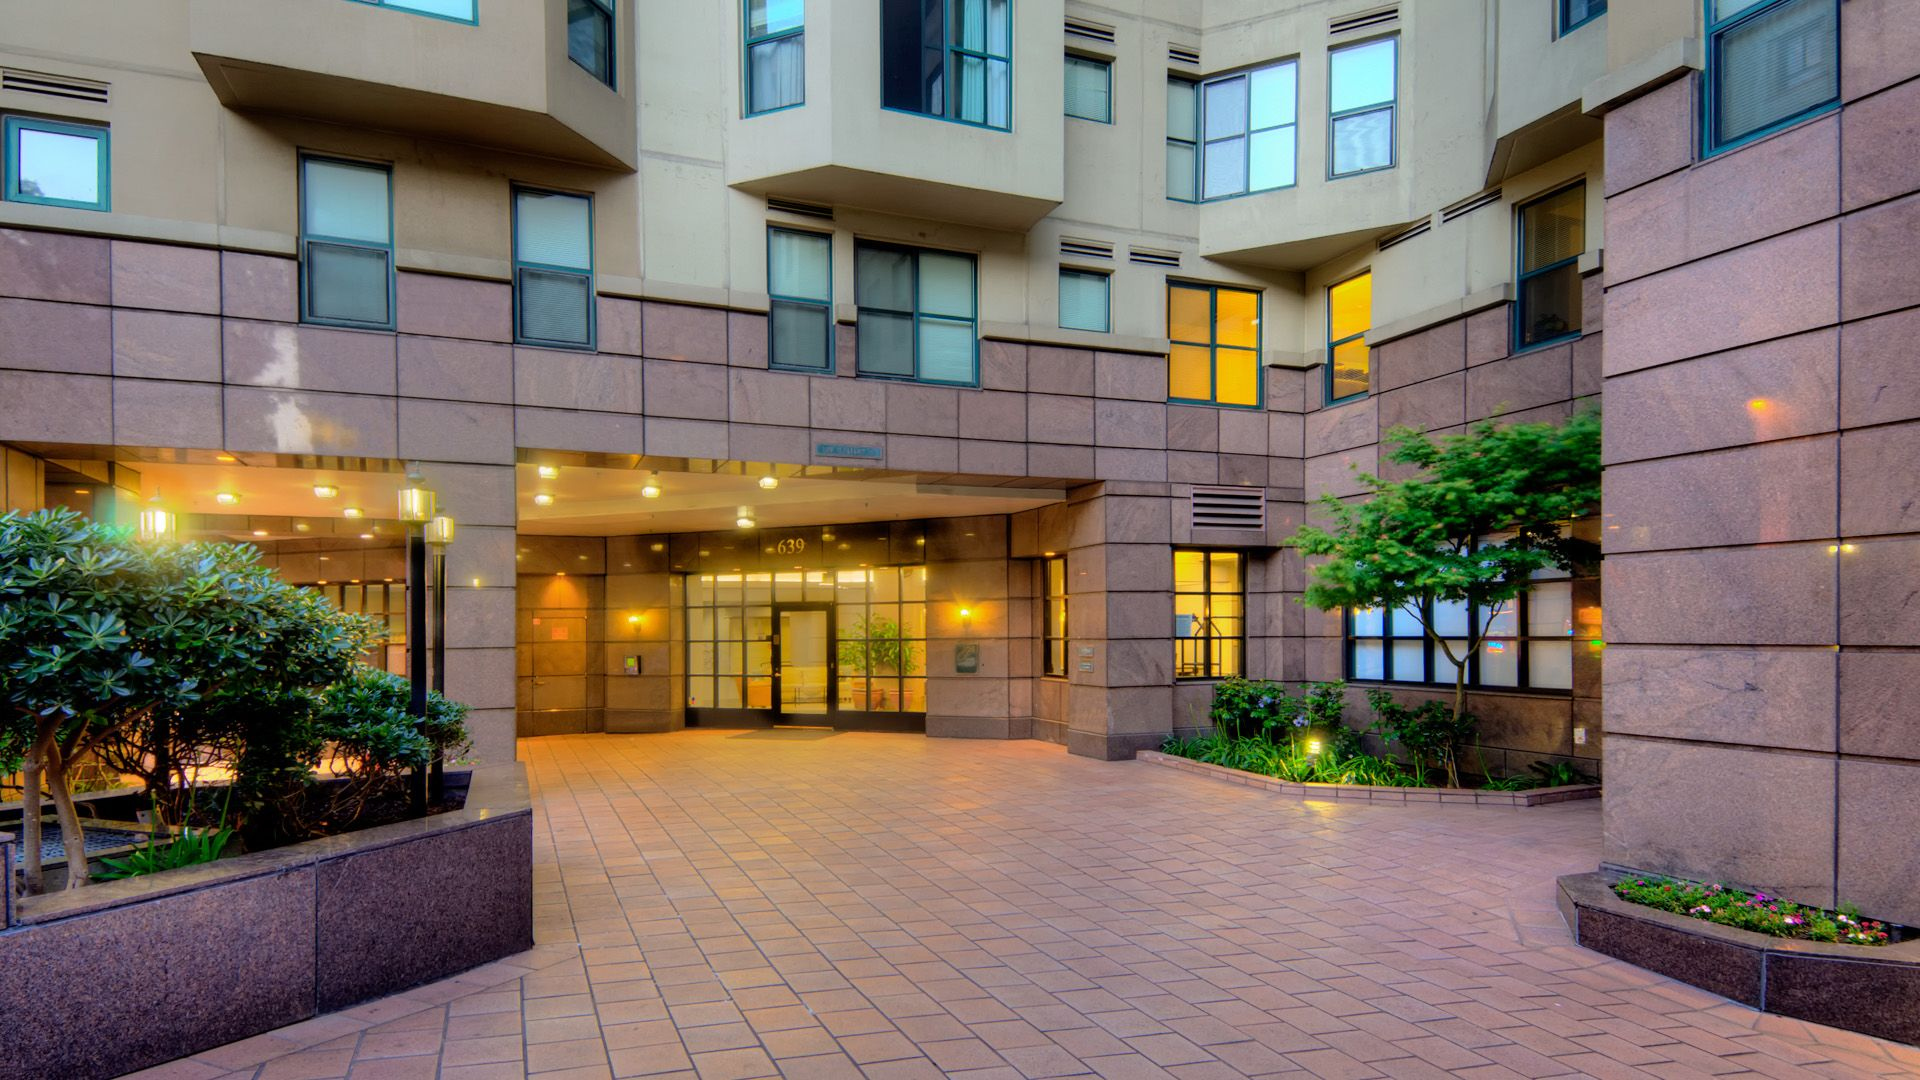 Geary Courtyard Apartments - Downtown San Francisco - 639 ...